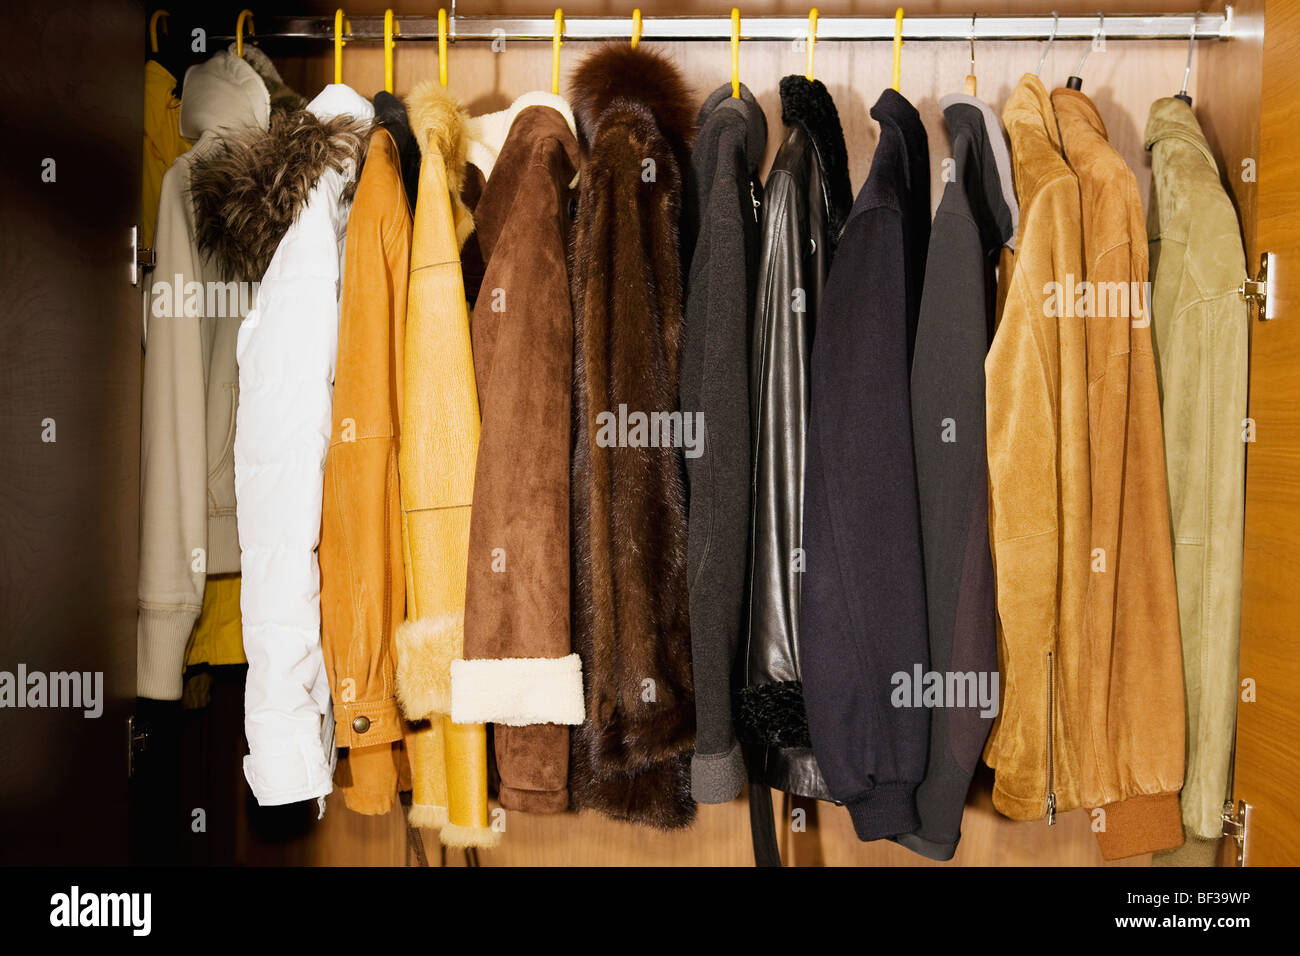 Clothes hanging in an almirah - Stock Image